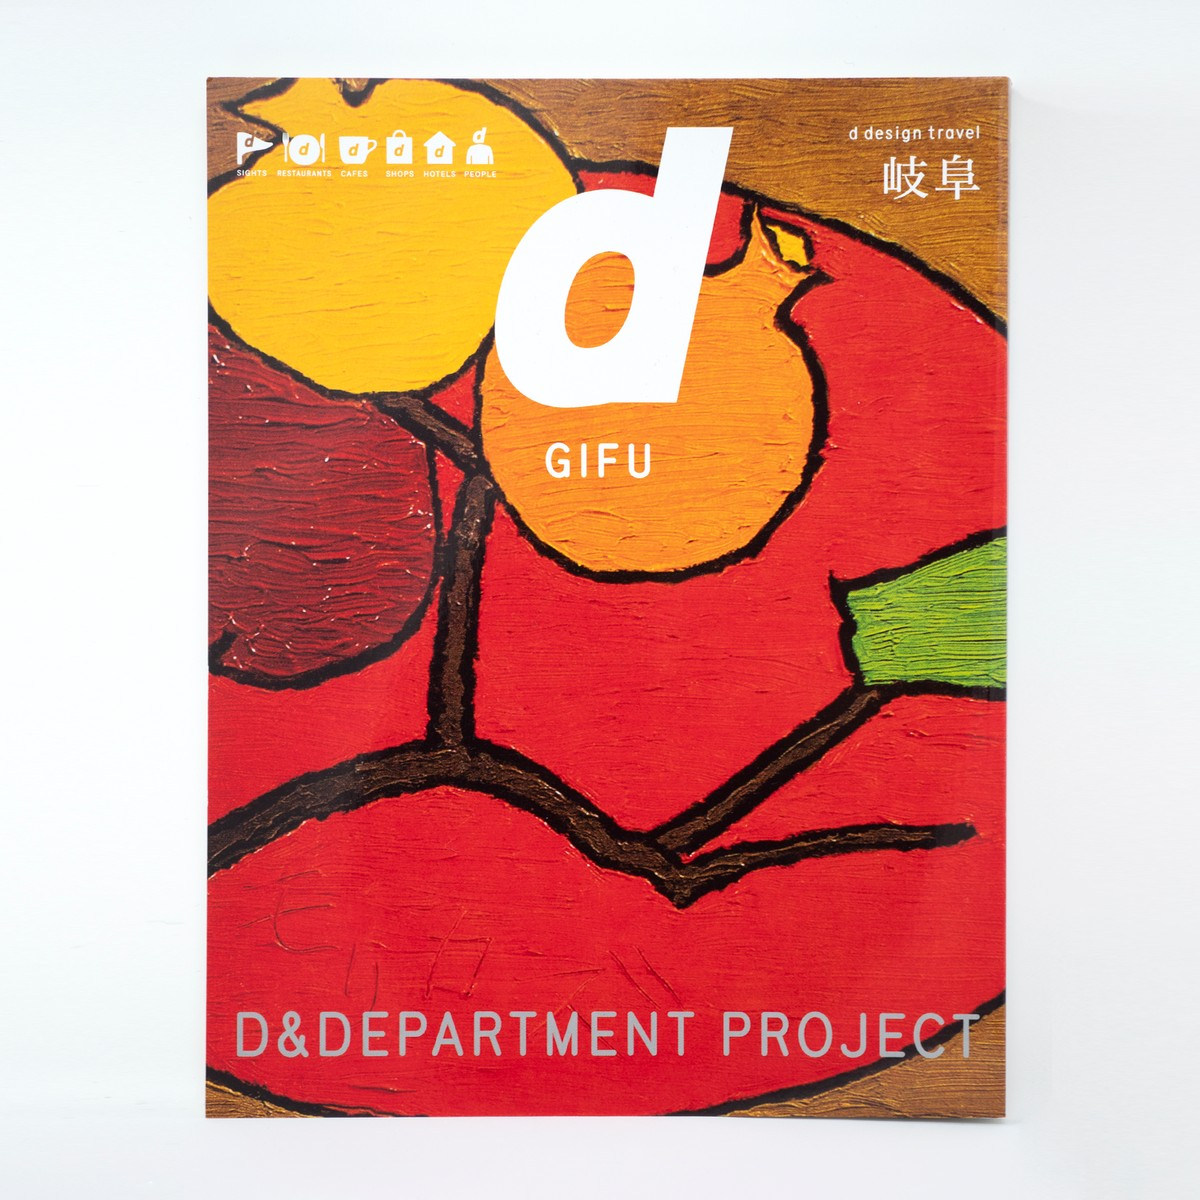 Photo of D&Department Travel Guide: Gifu Edition